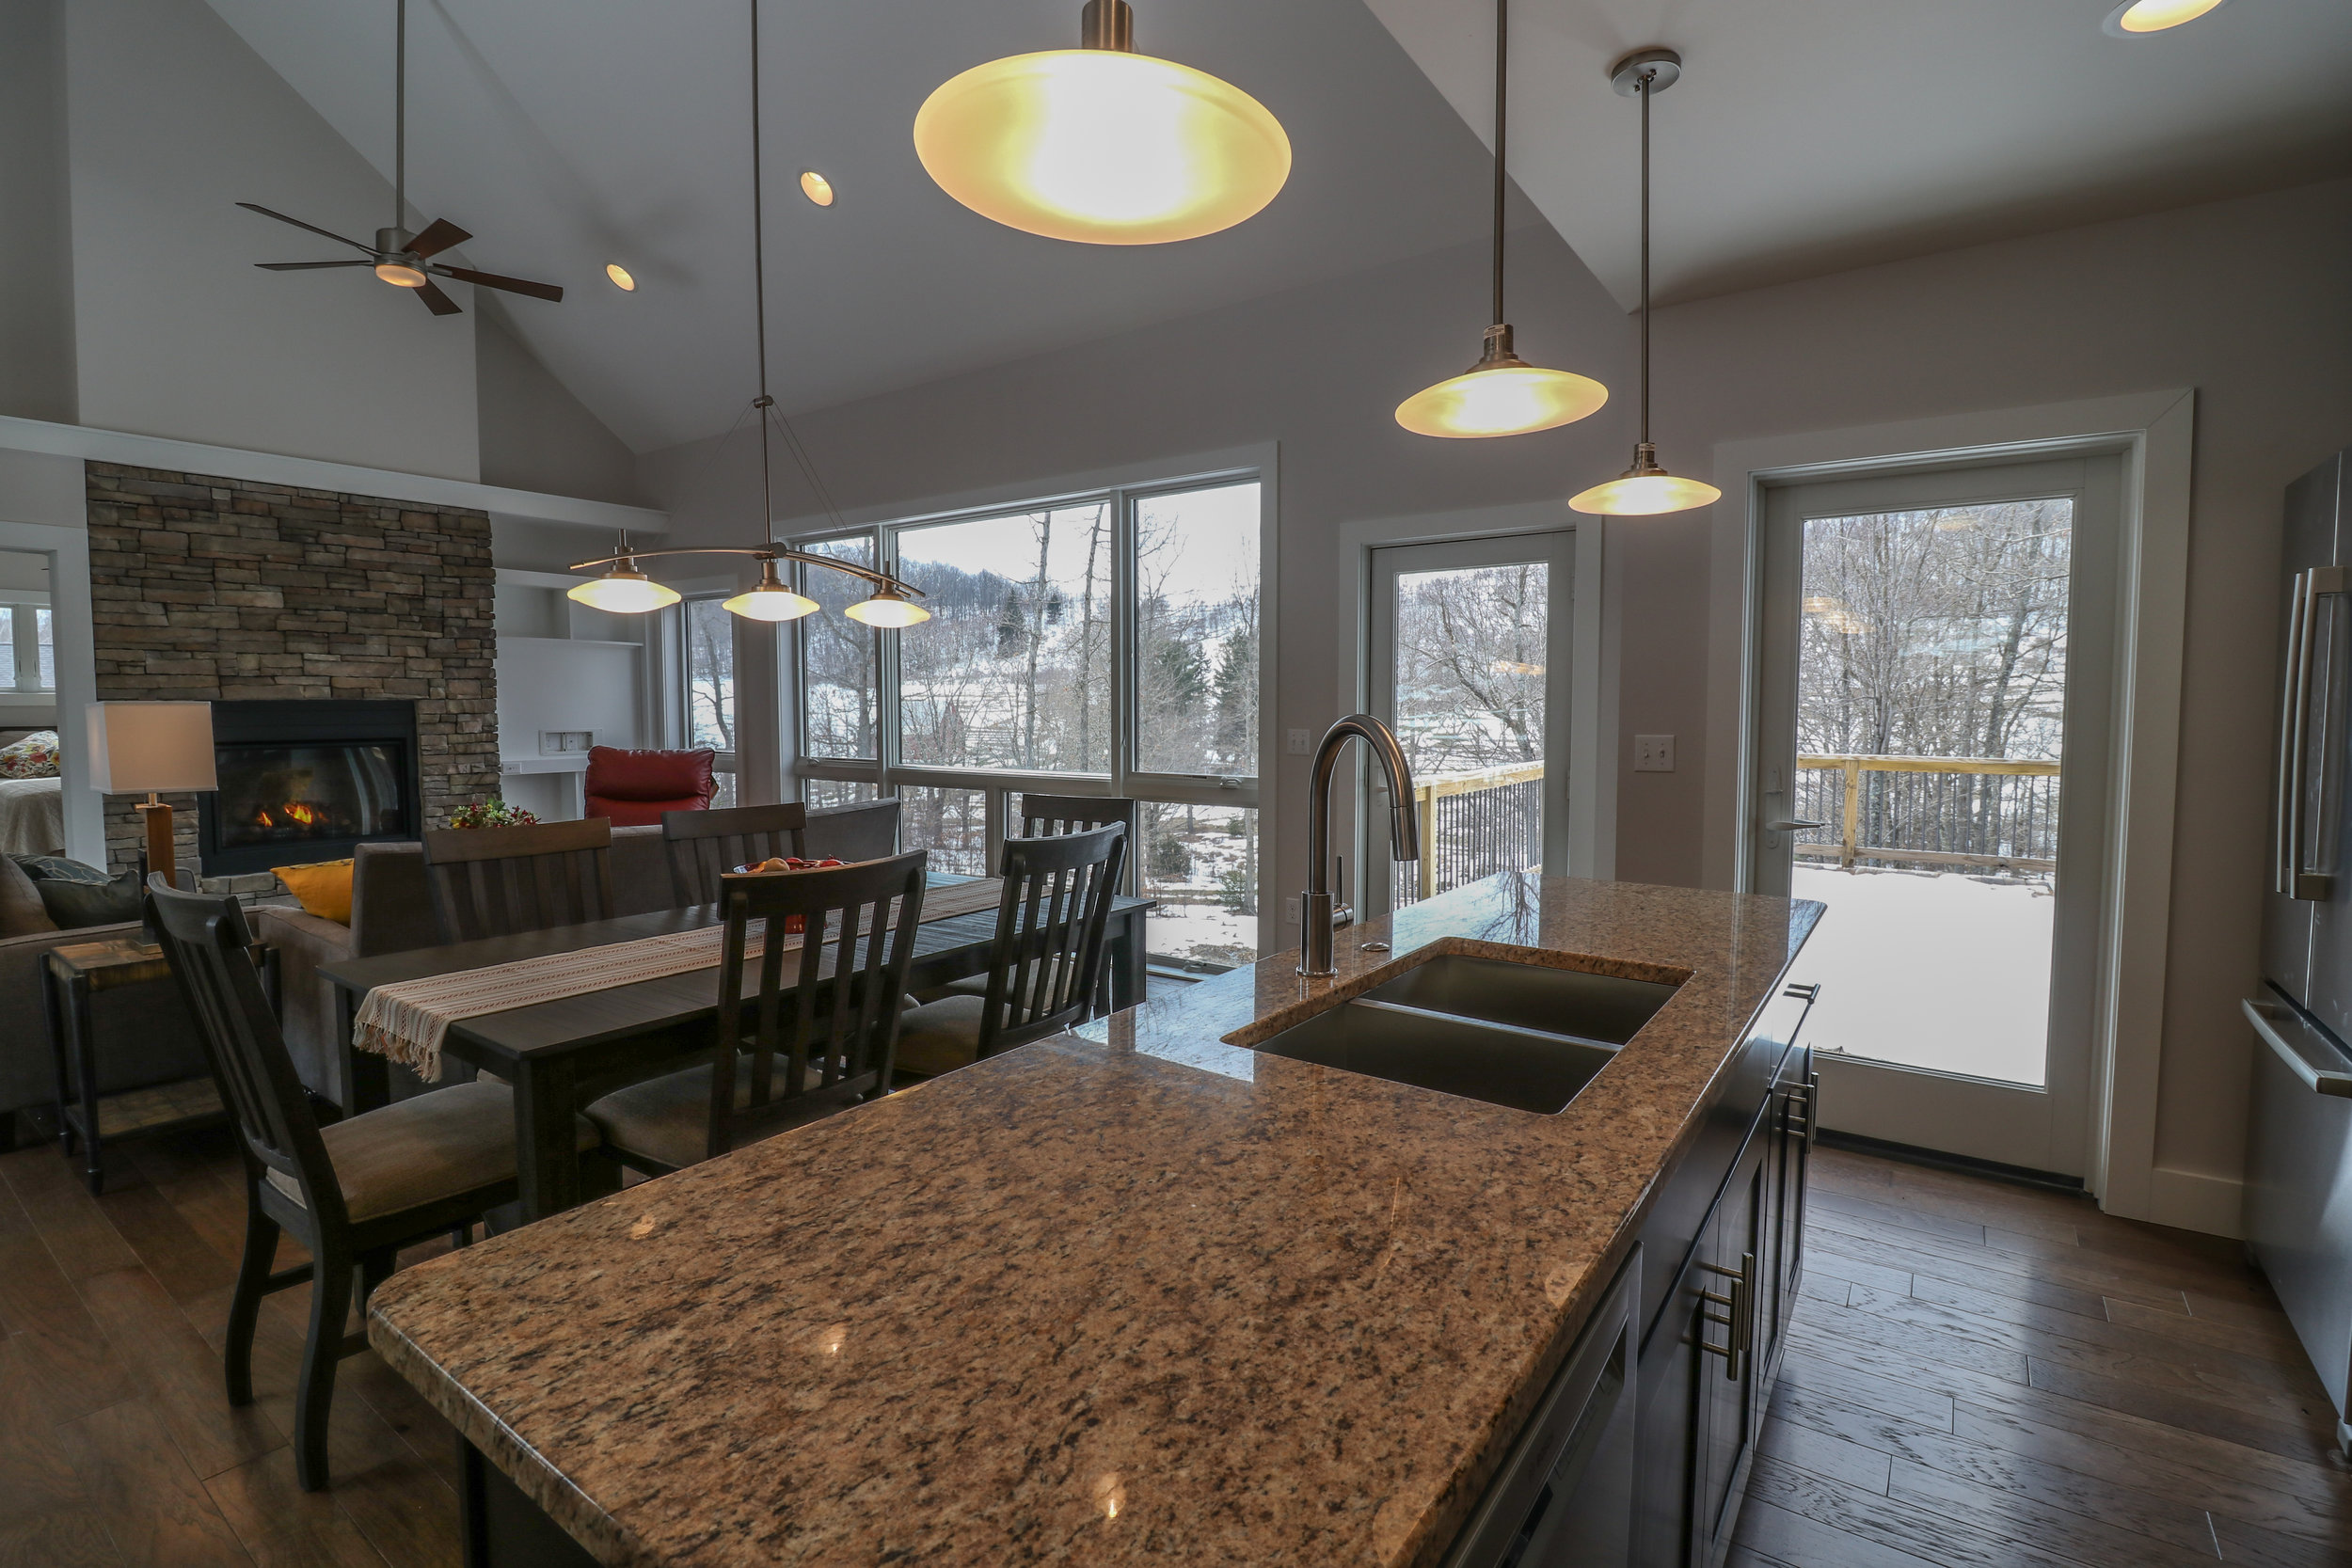 gosnell_builders_home_for_sale_ridgeview_valley16.jpg